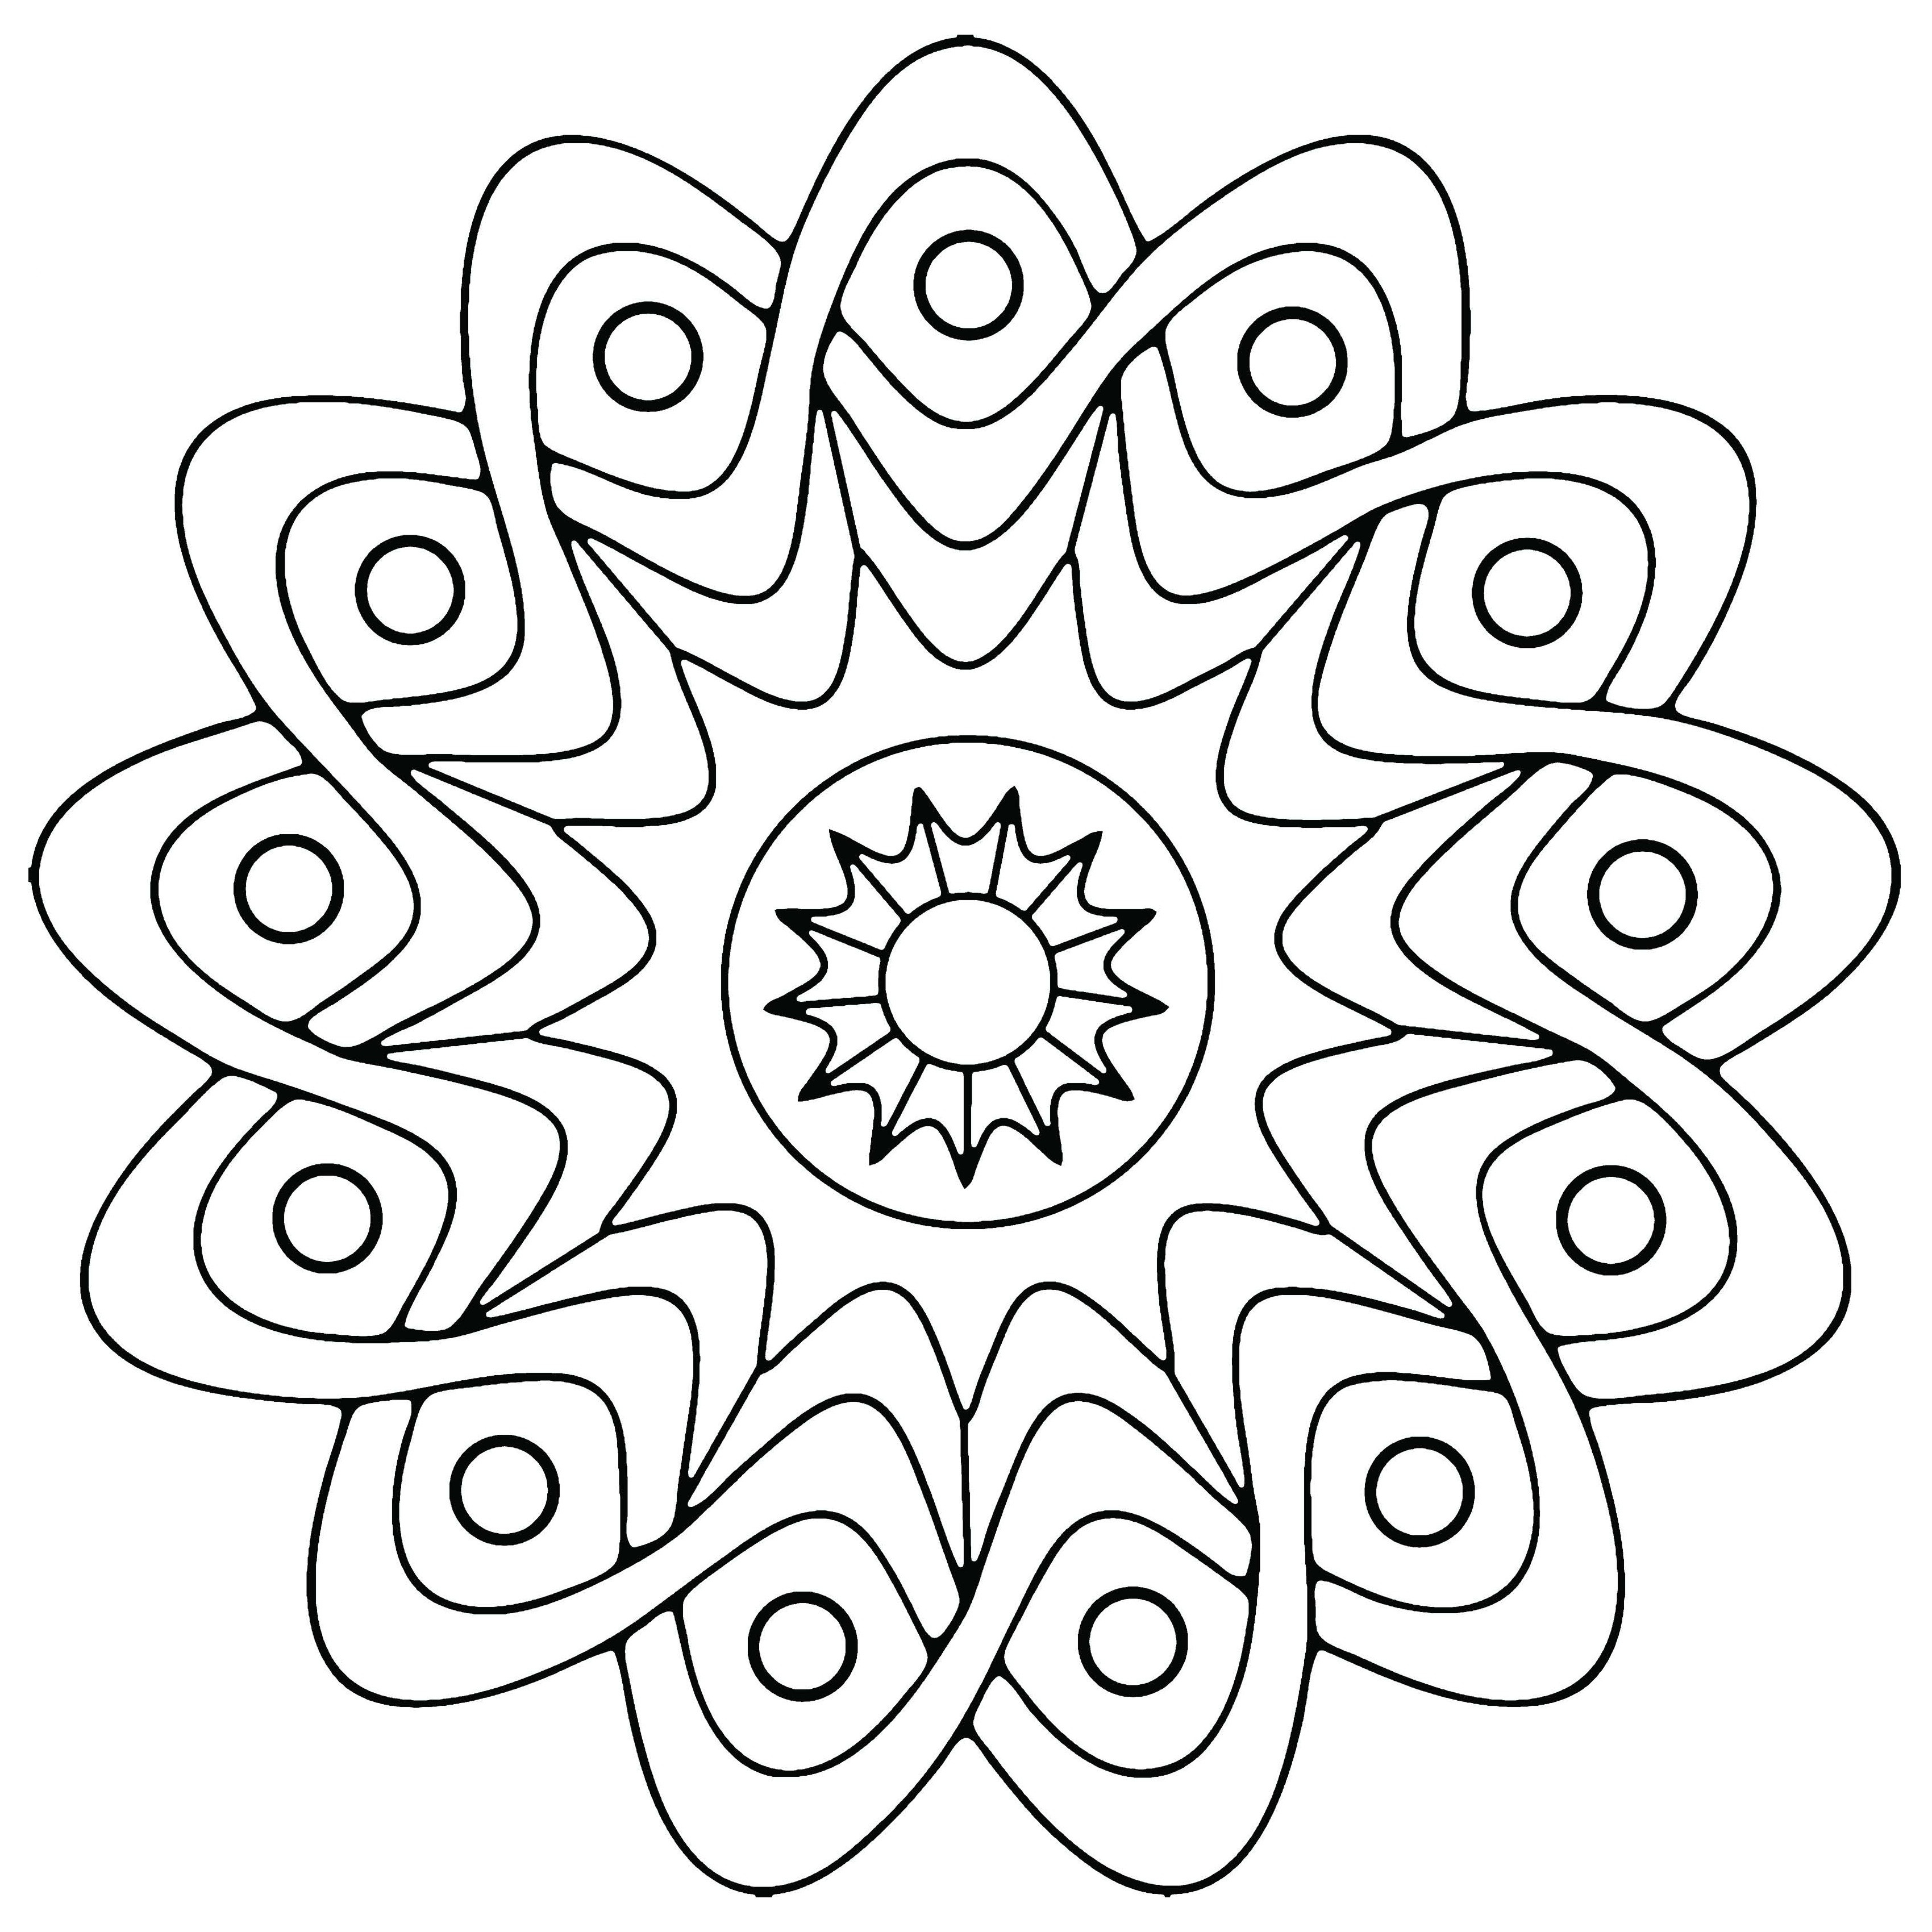 Best ideas about Easy Adult Coloring Books . Save or Pin Free Printable Geometric Coloring Pages For Kids Now.